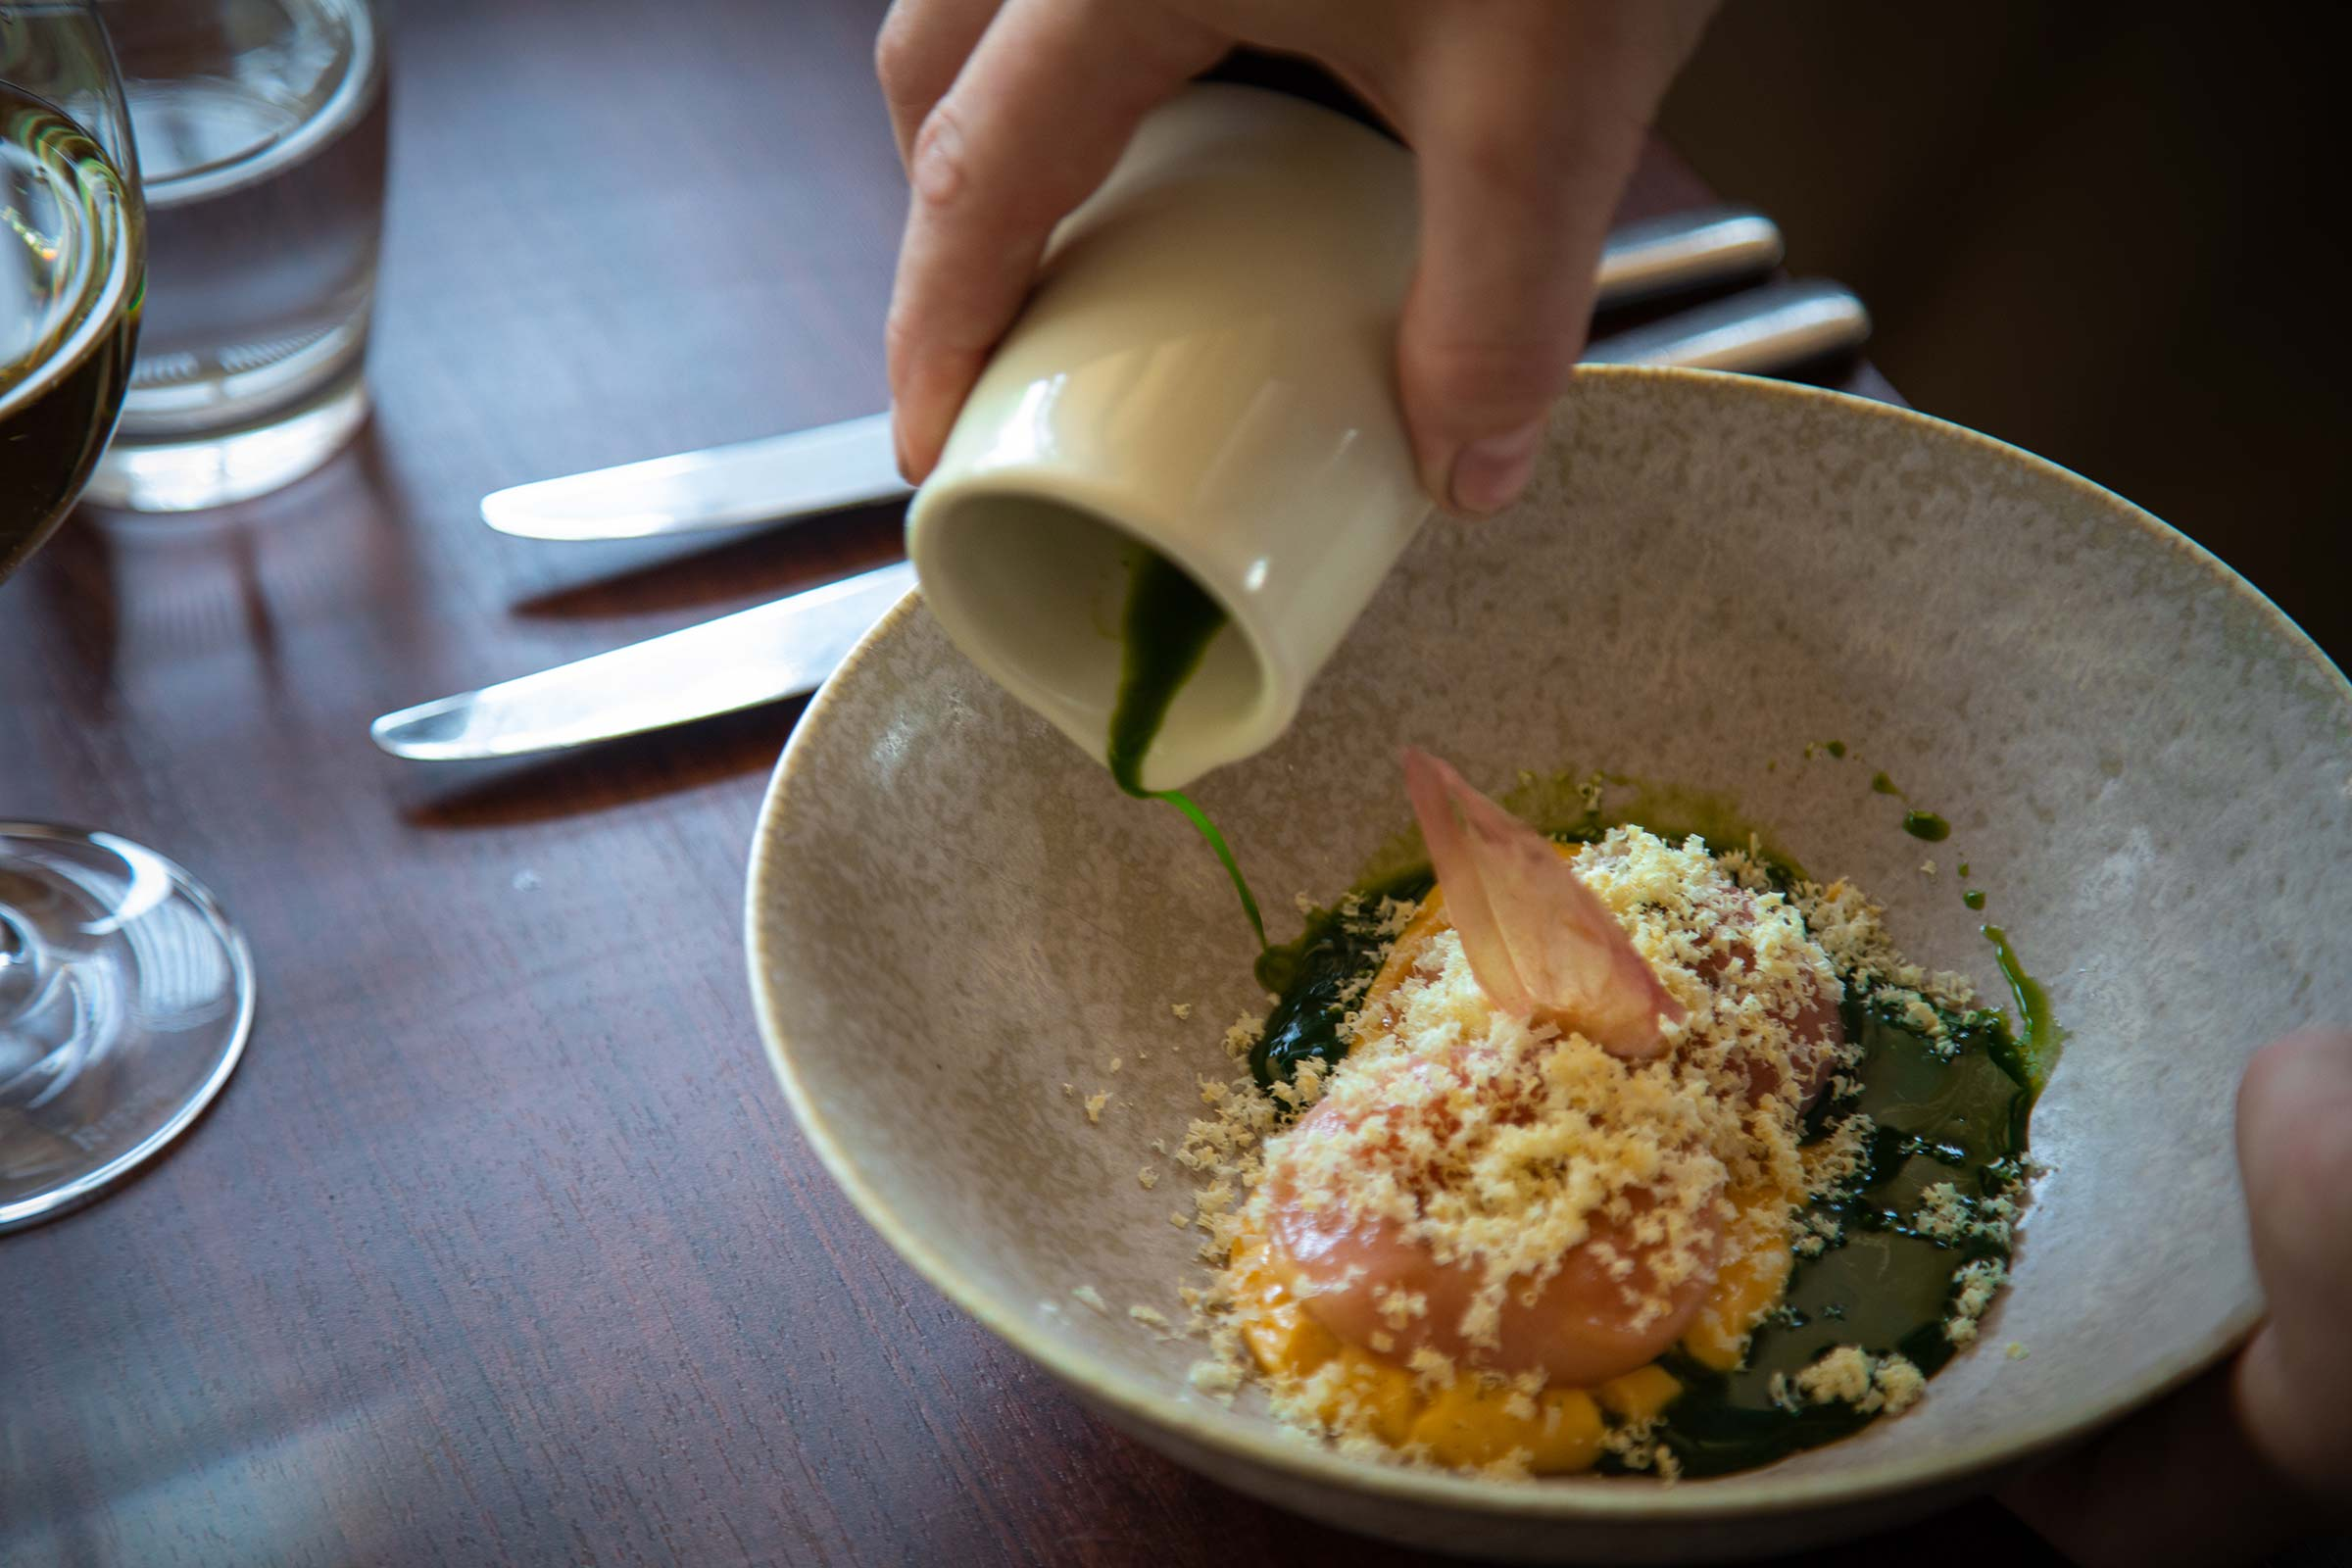 A green sauce is being poured onto a peach in a restaurant